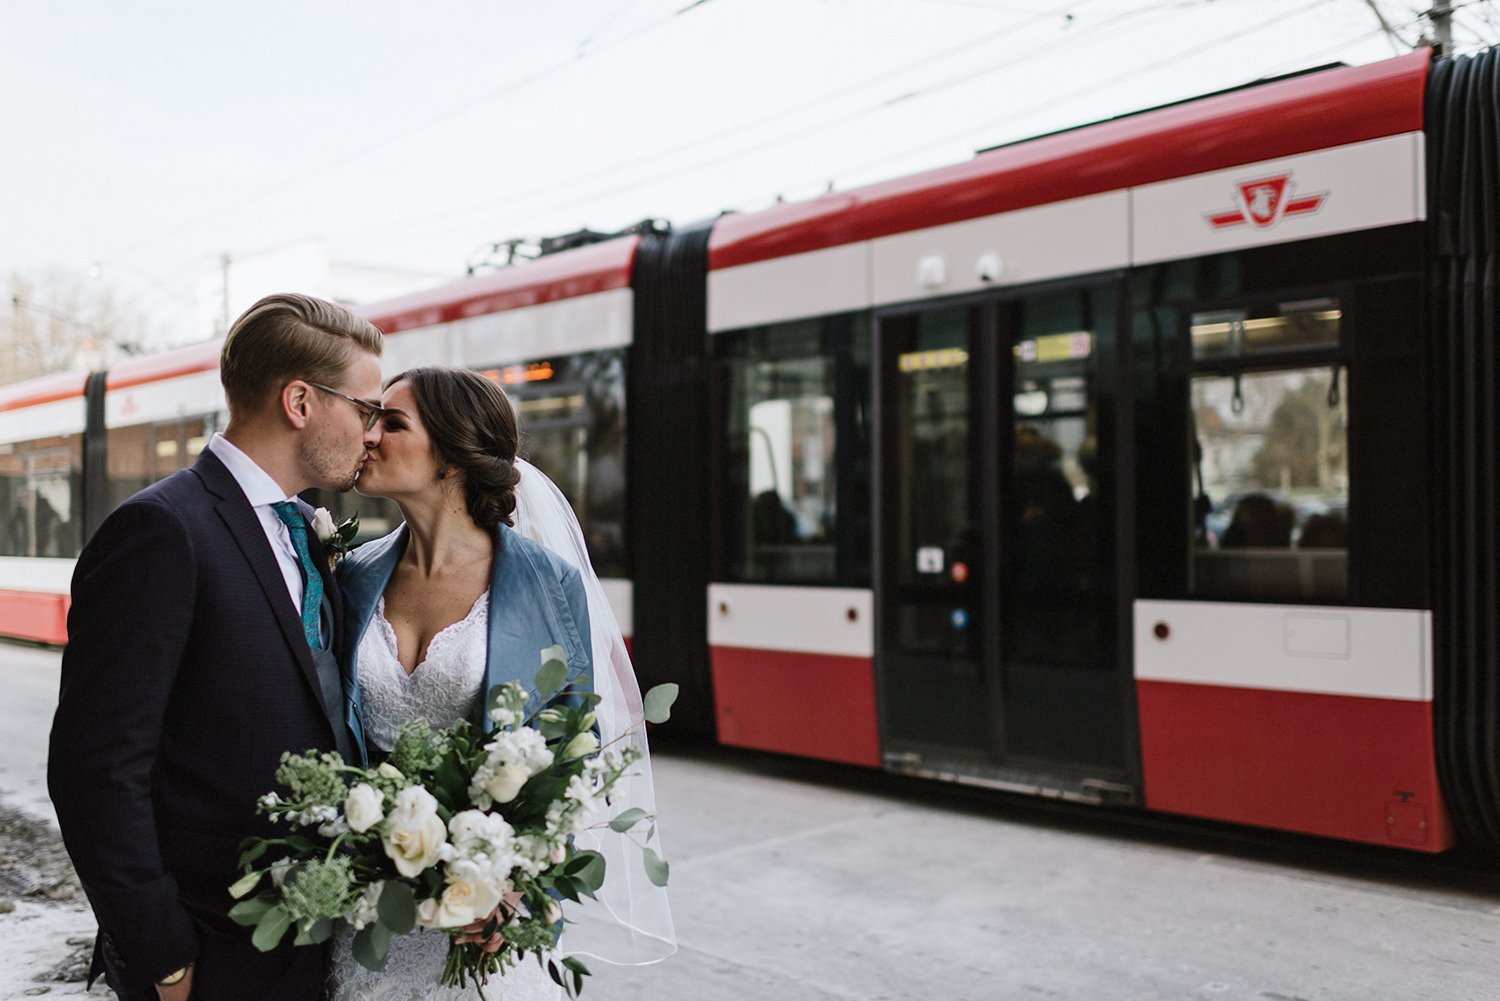 50-broadview-hotel-wedding-photos-in-downtown-toronto-best-venues-analog-wedding-photography-boutique-hotel-26.jpg